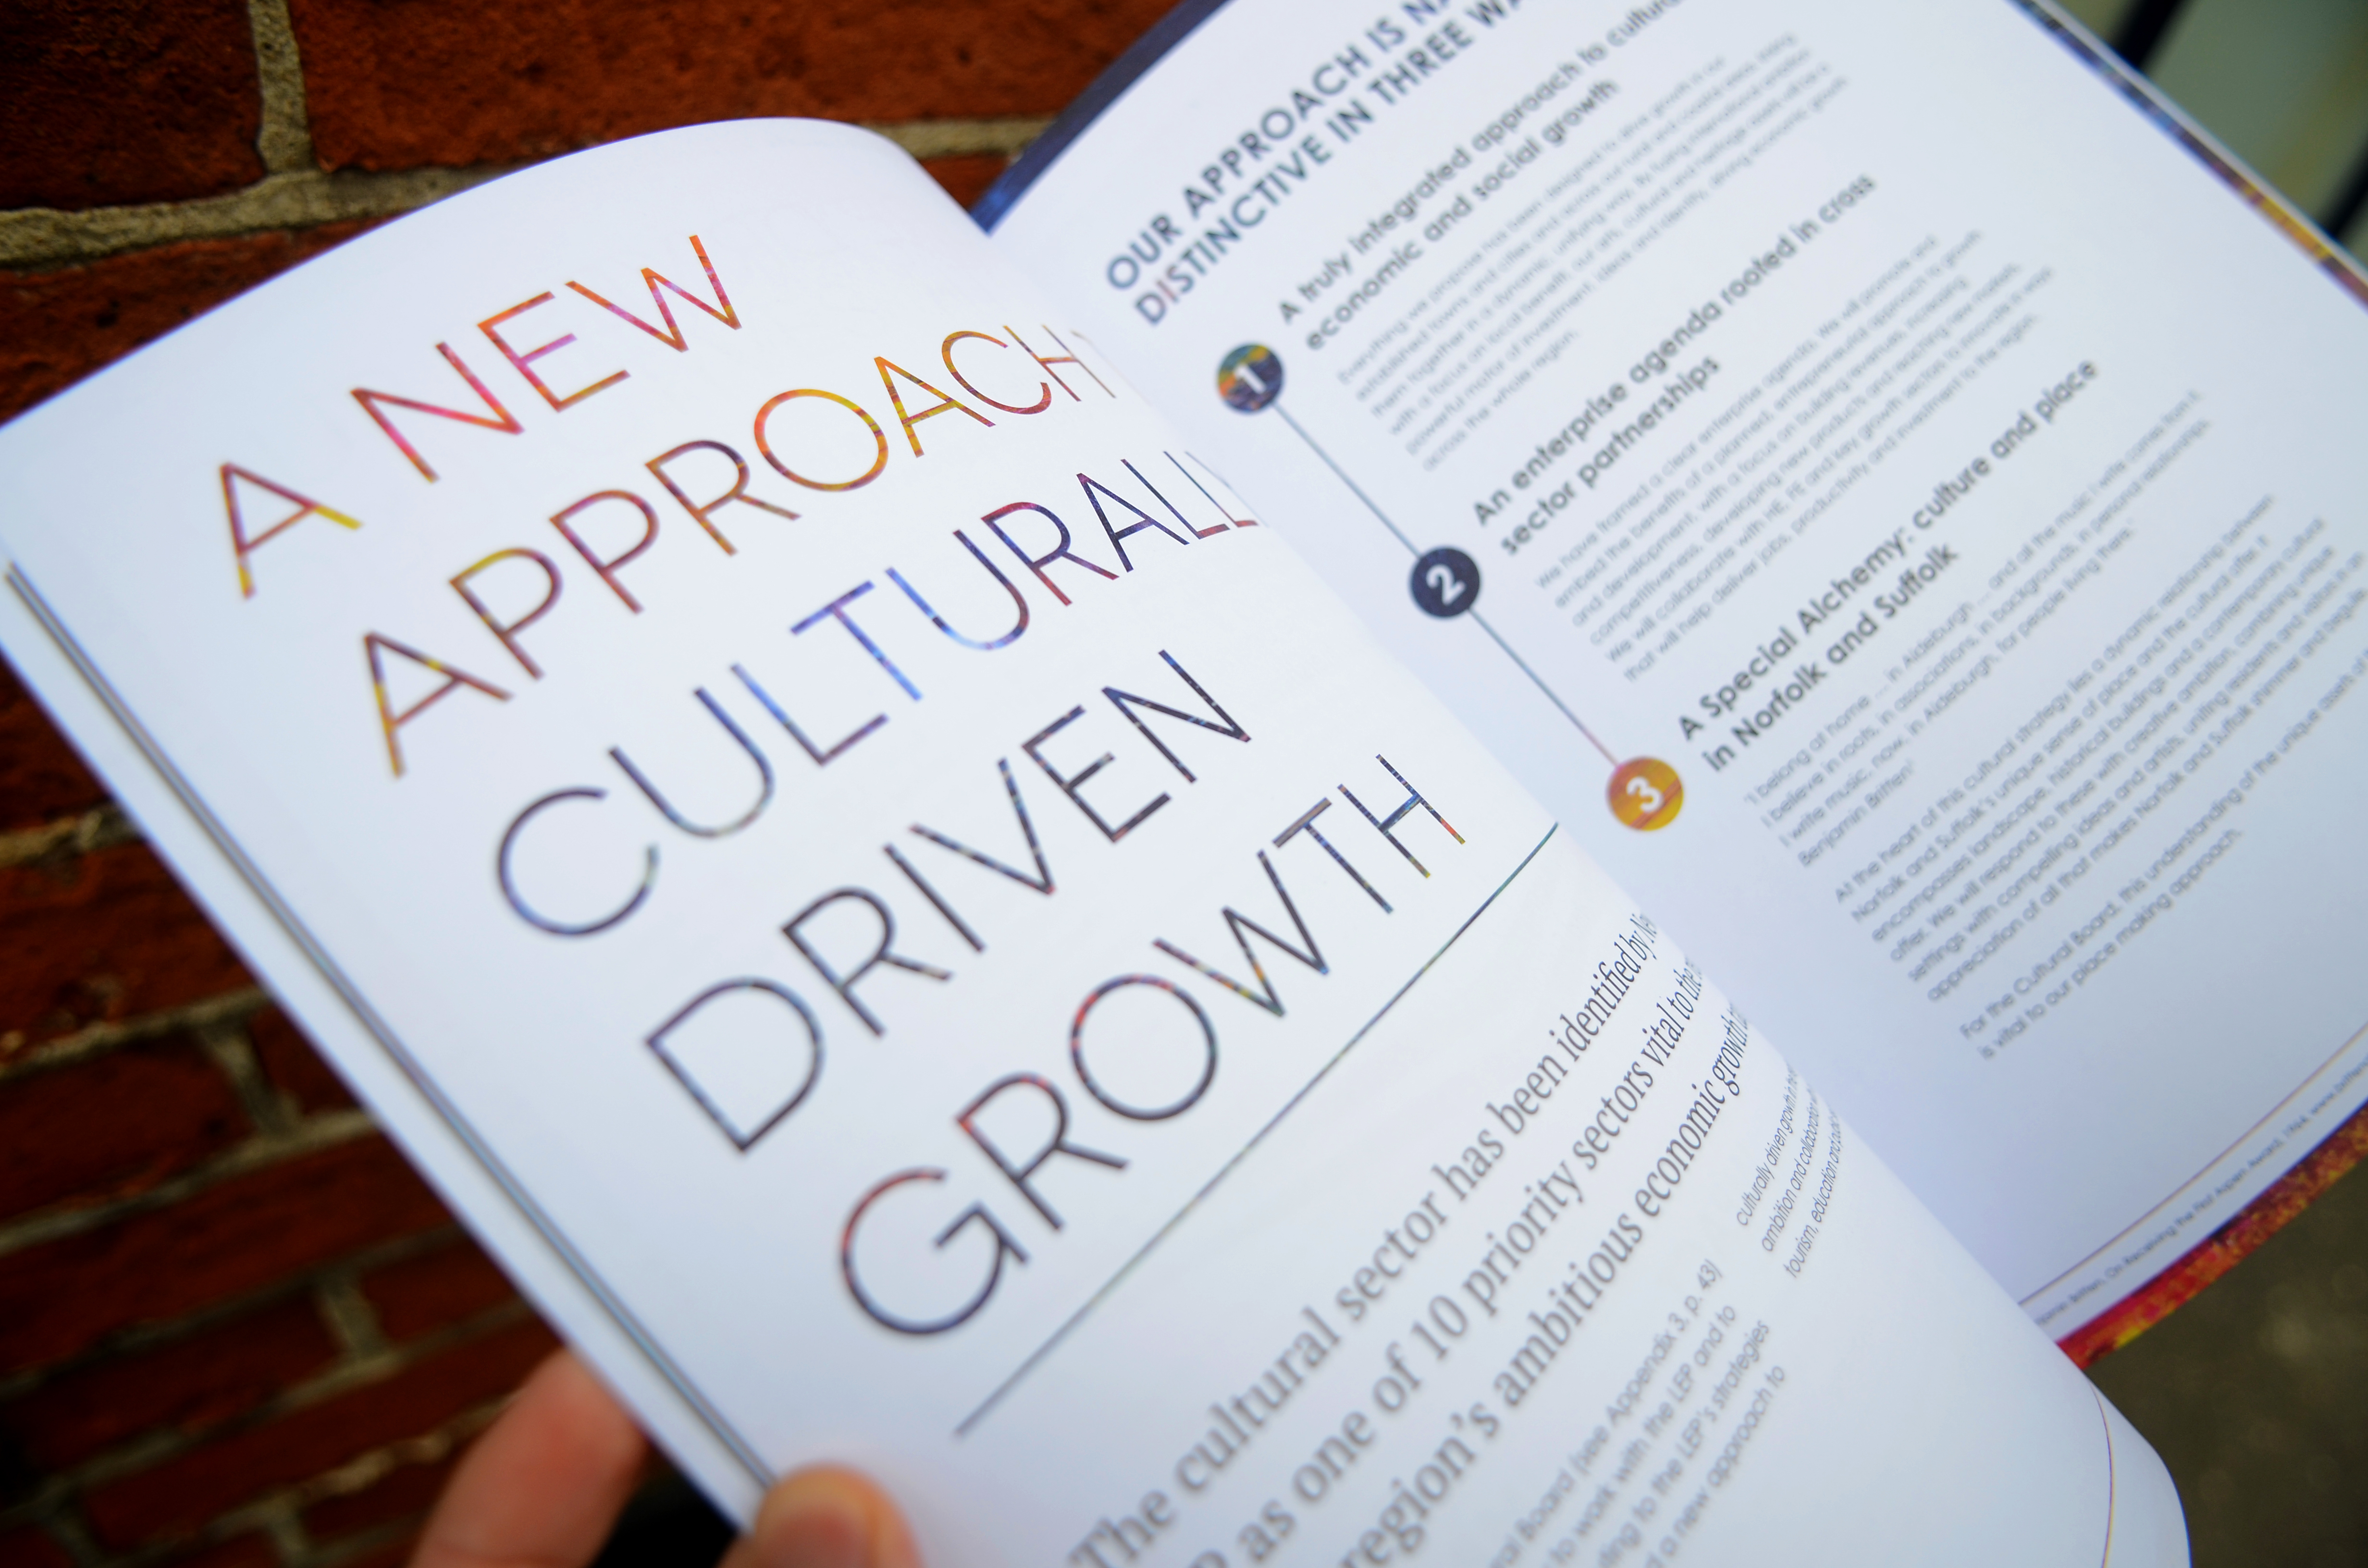 The 'Culture Drives Growth' strategy document